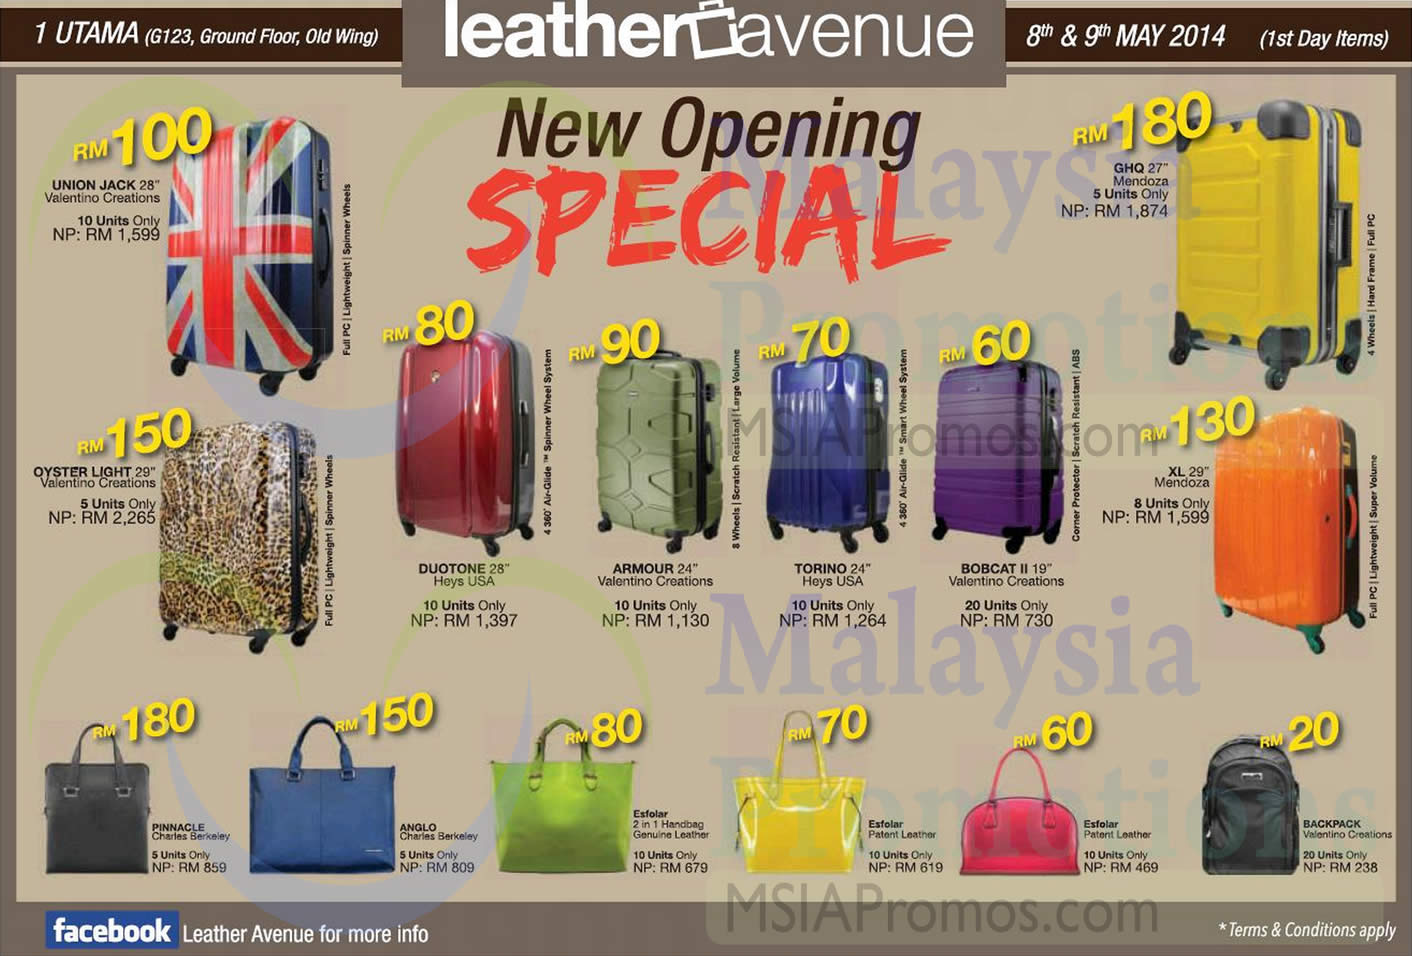 Leather Avenue Luggage | Luggage And Suitcases